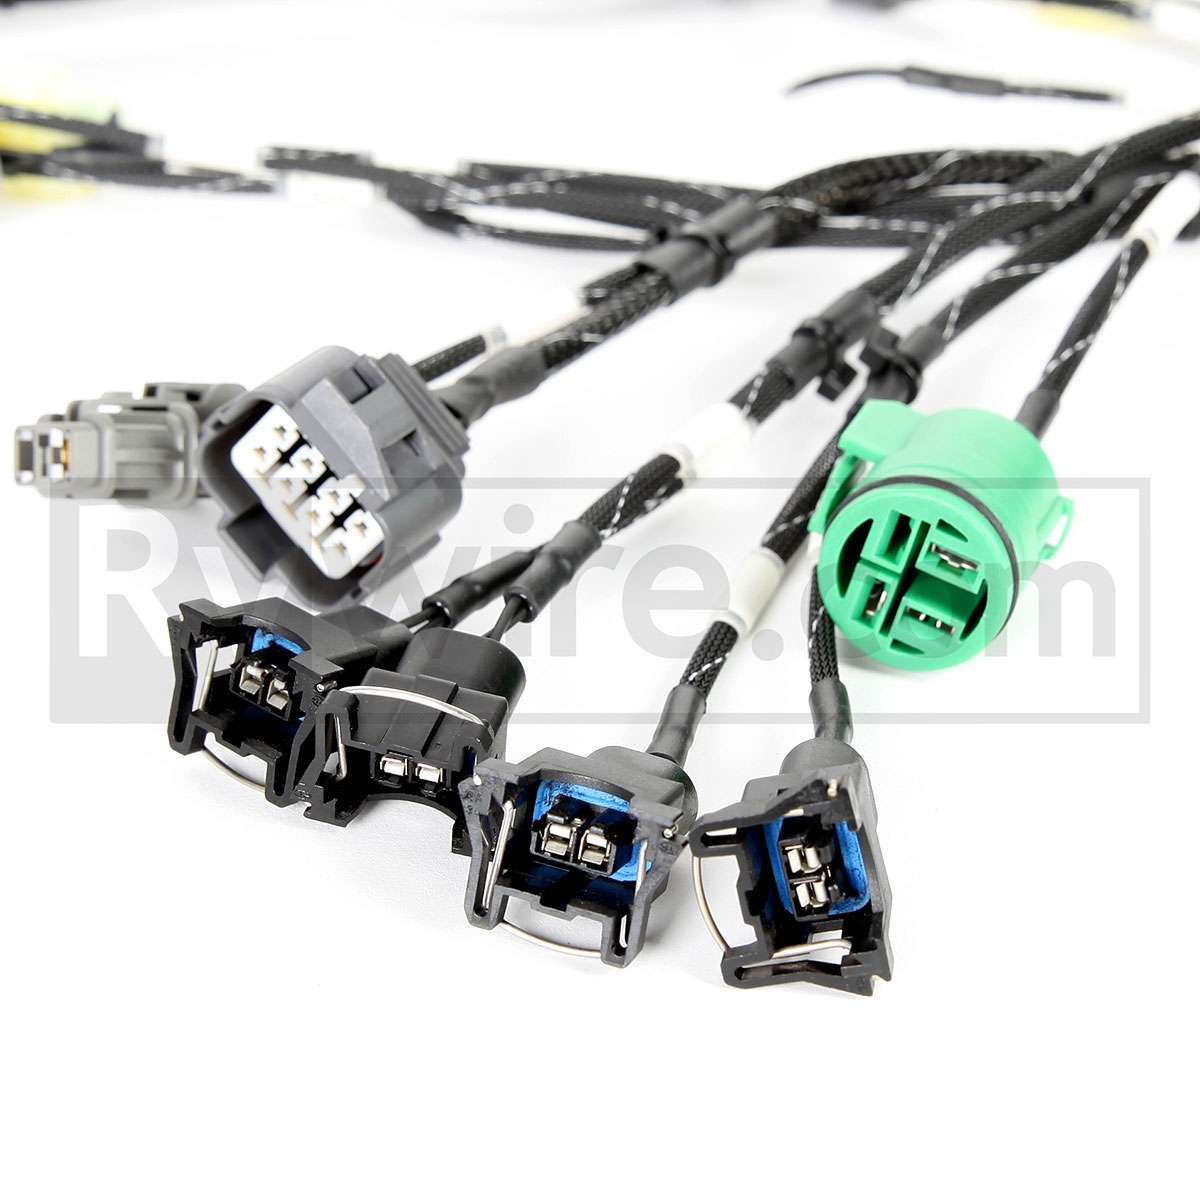 B1 Base 4?1403534211 rywire com budget d & b series tucked engine harness 99-00 civic si wiring harness at bayanpartner.co